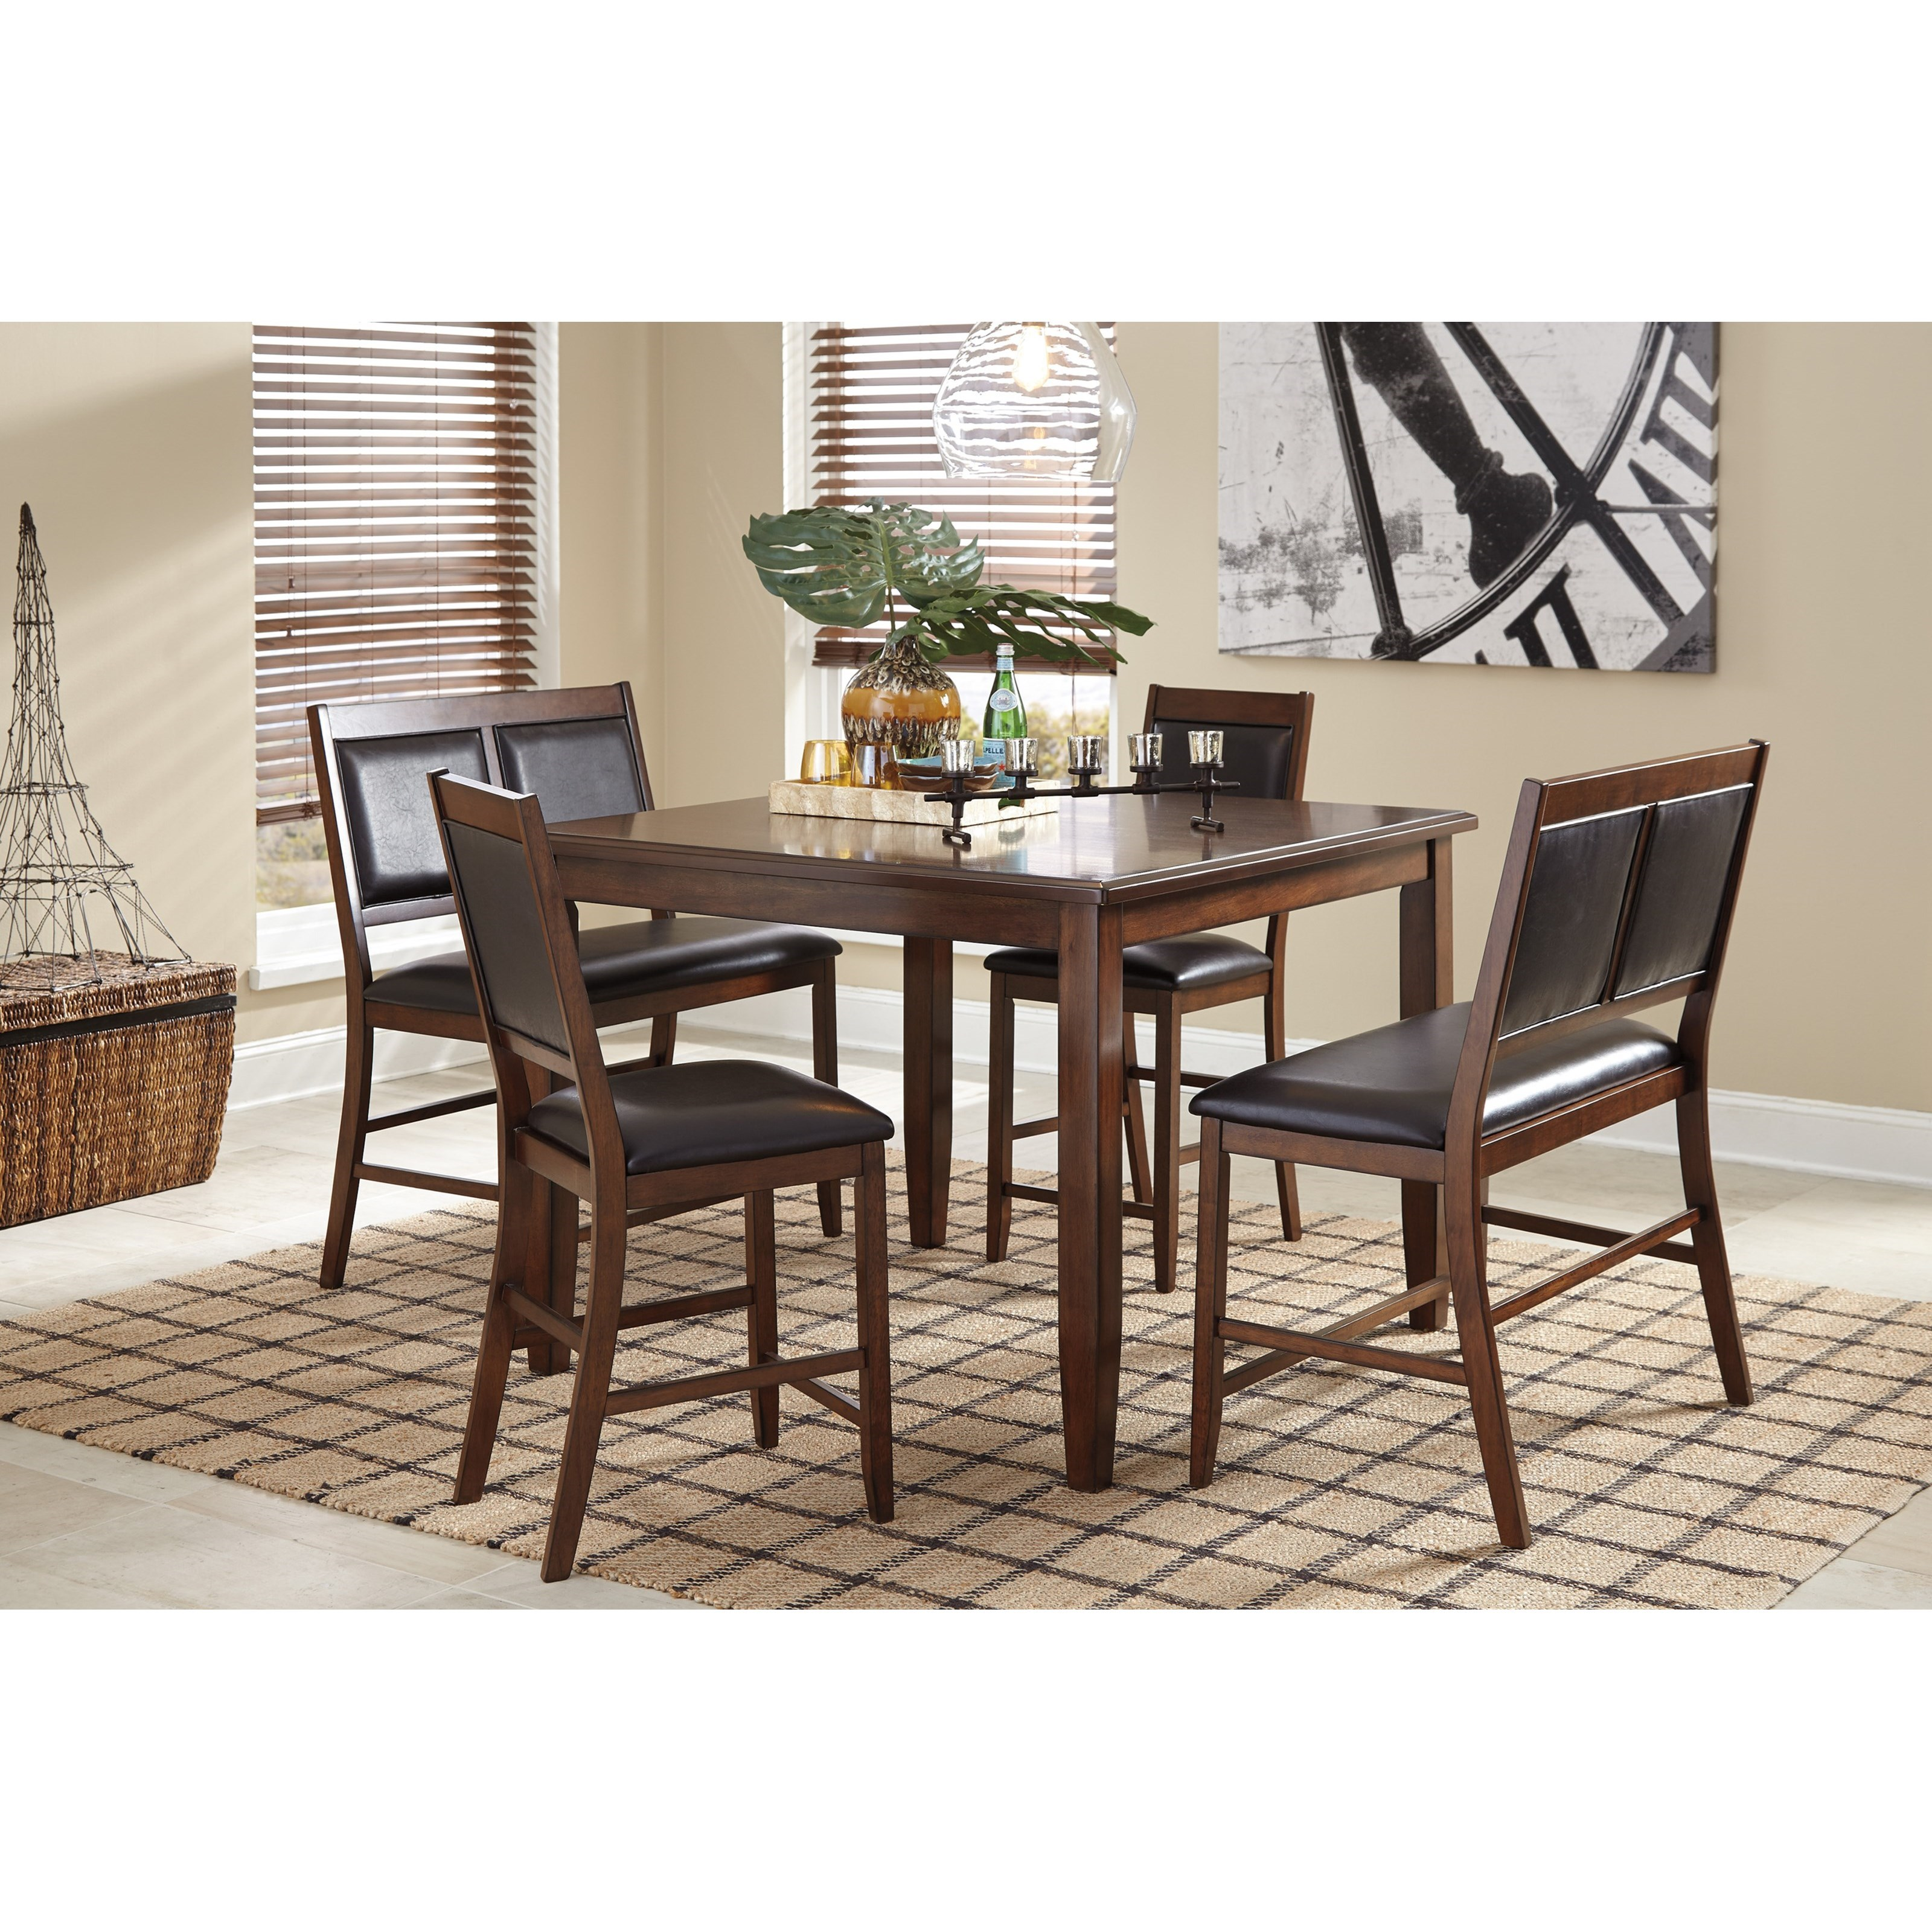 Signature design by ashley meredy d395 323 5 piece dining for 2 piece dining room set